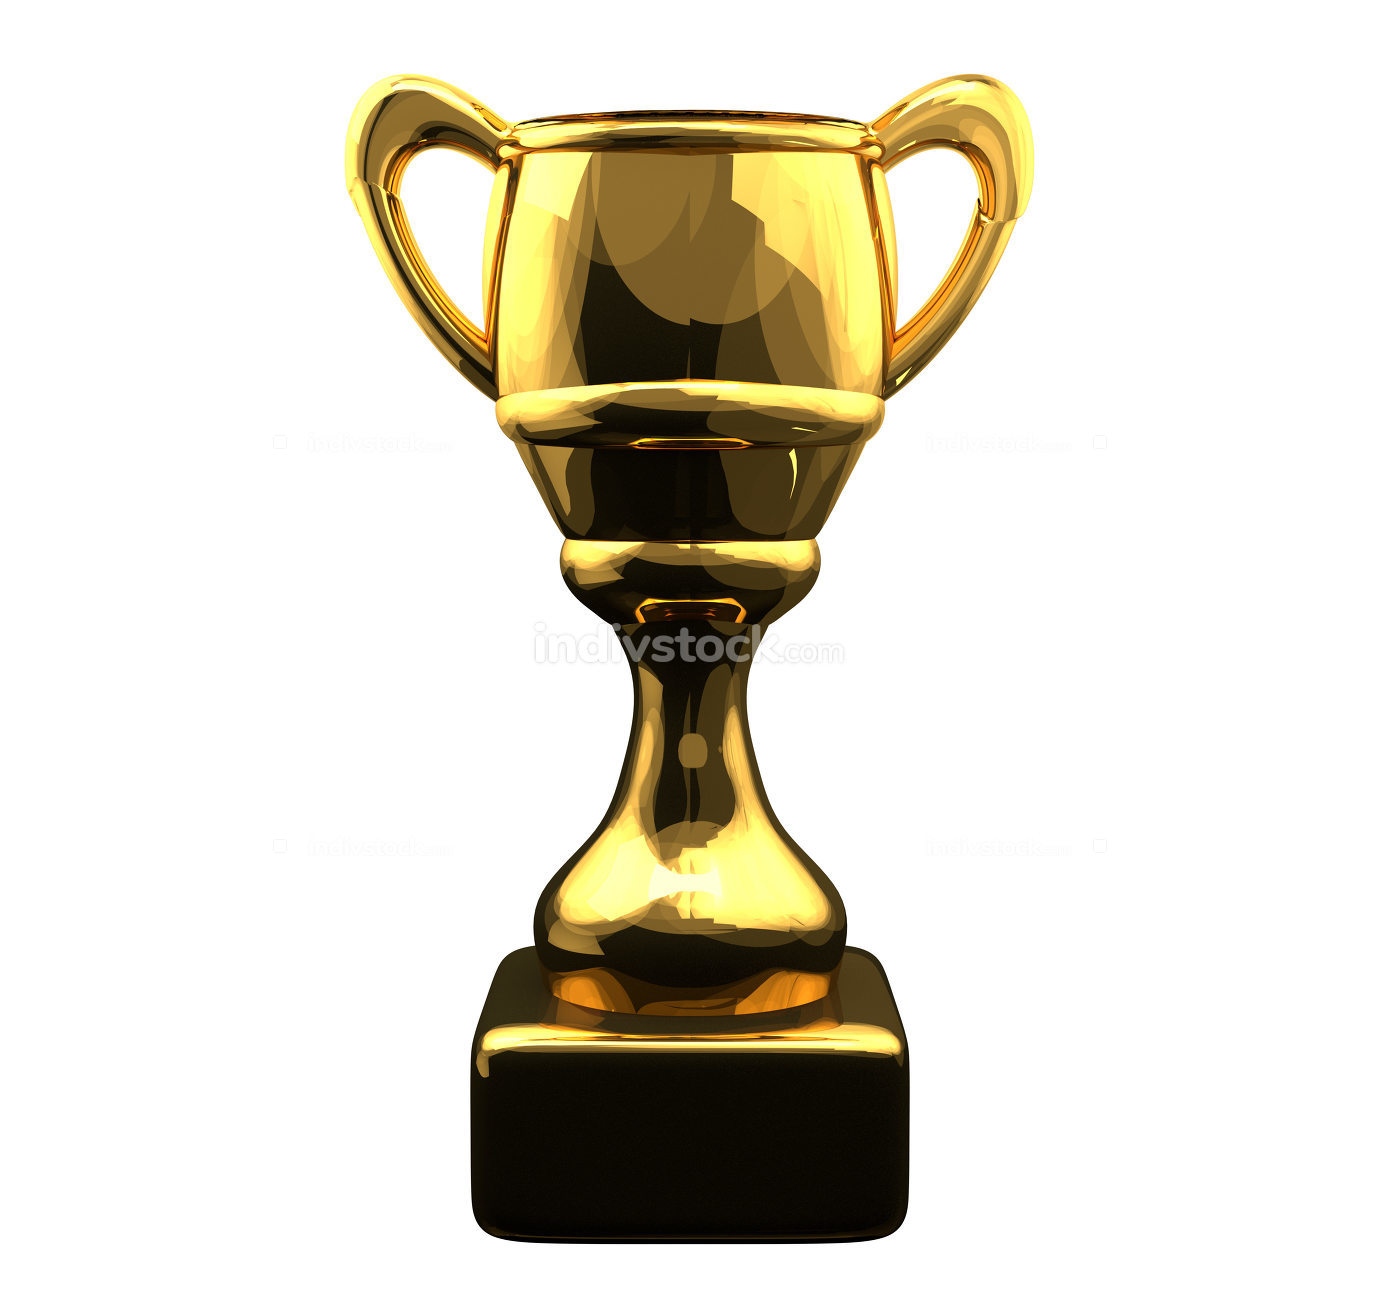 golden cup 3d rendering